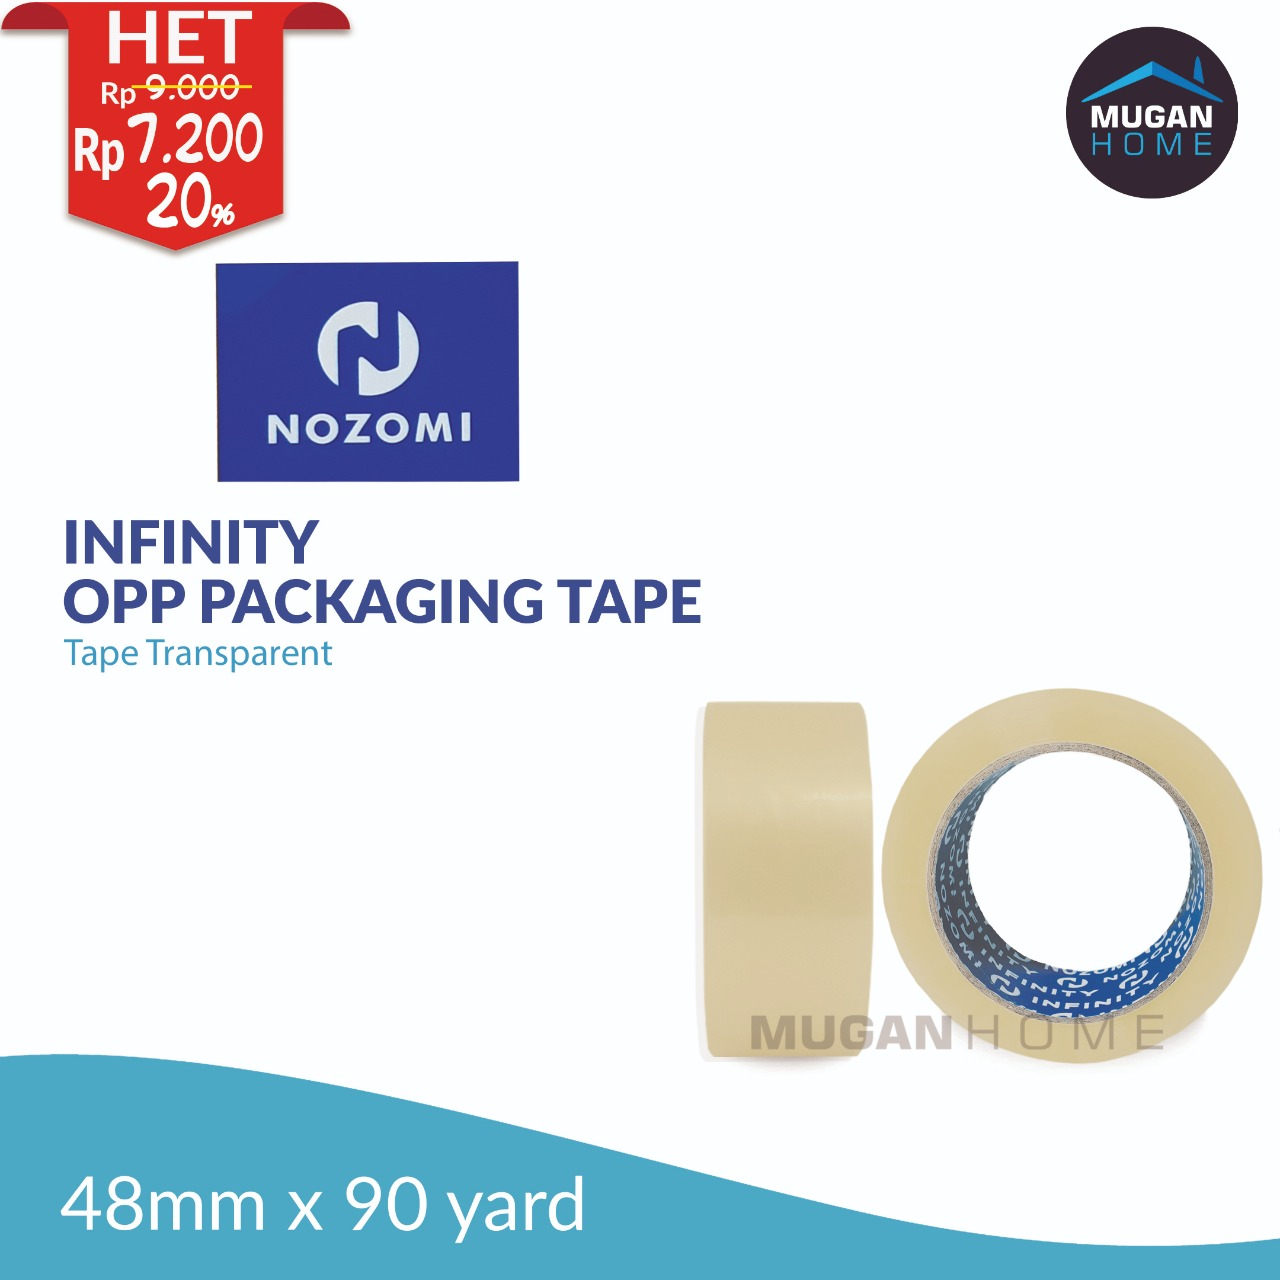 NOZOMI INFINITY OPP PACKAGING TAPE 48MM X 90YARD CLEAR